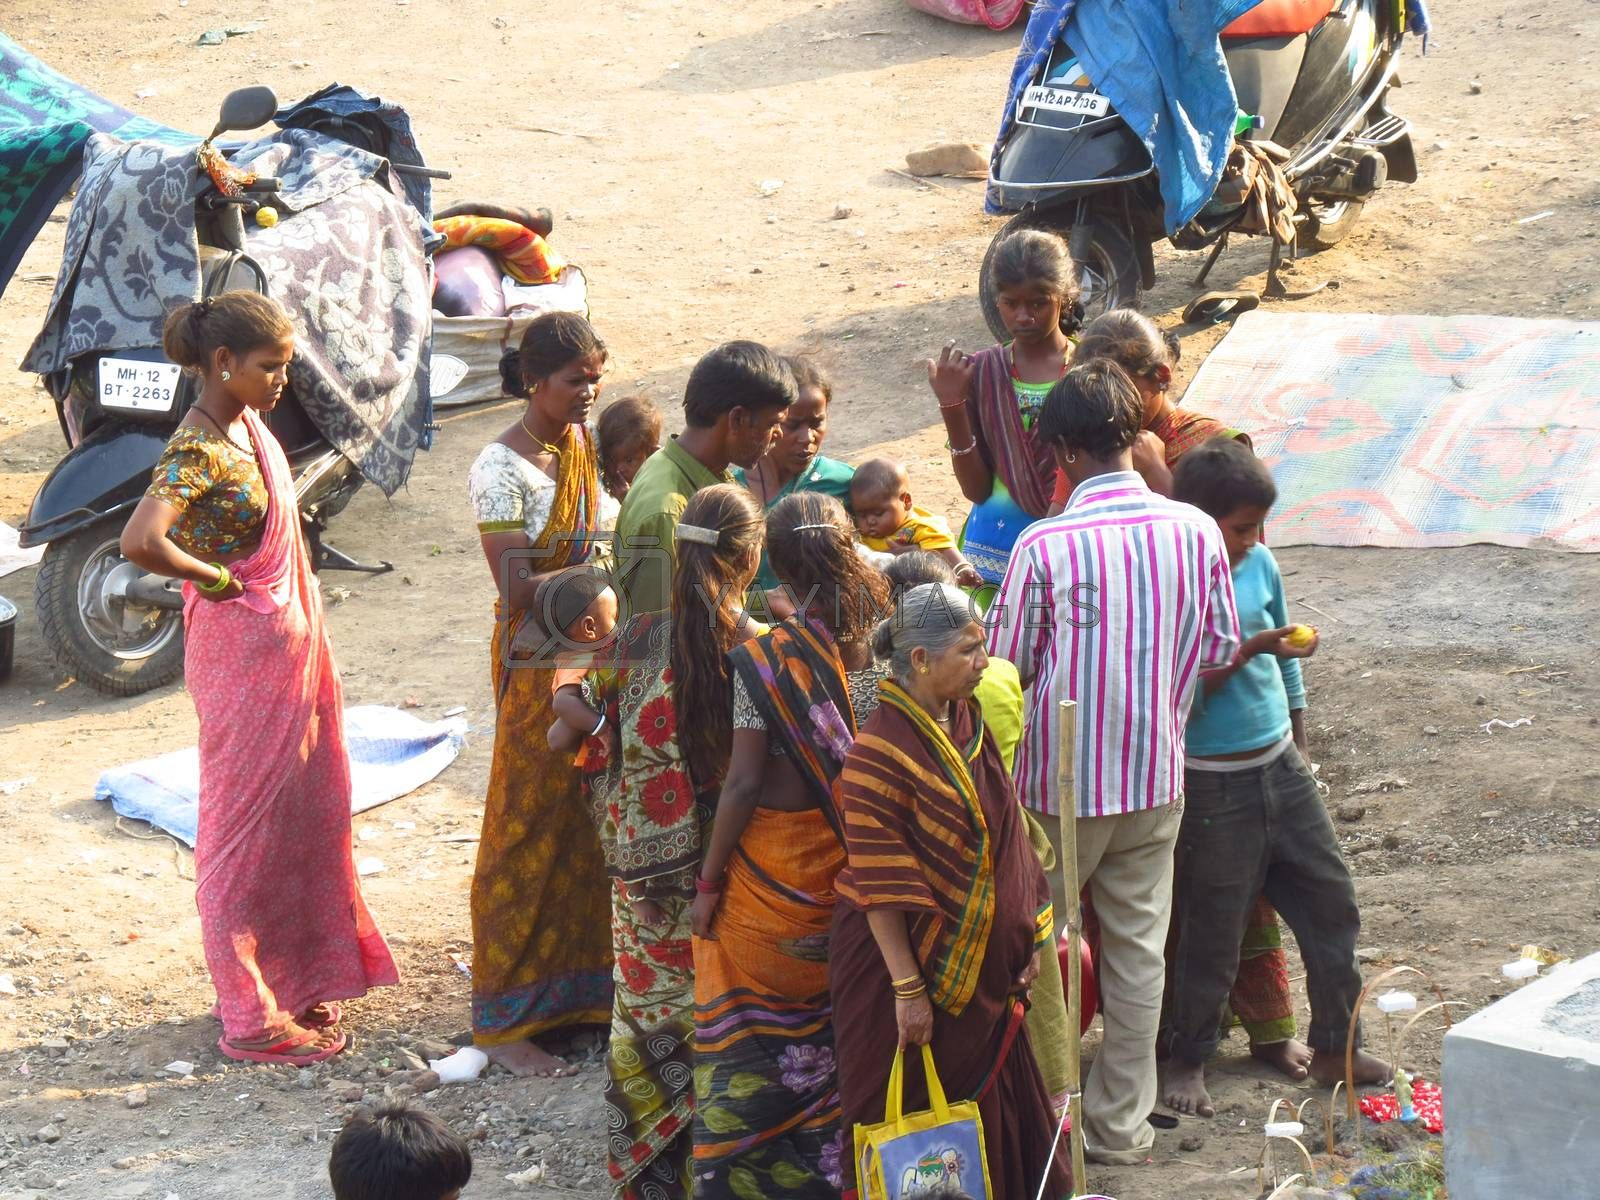 Royalty free image of A family of poor people in India discussing their problems by thefinalmiracle